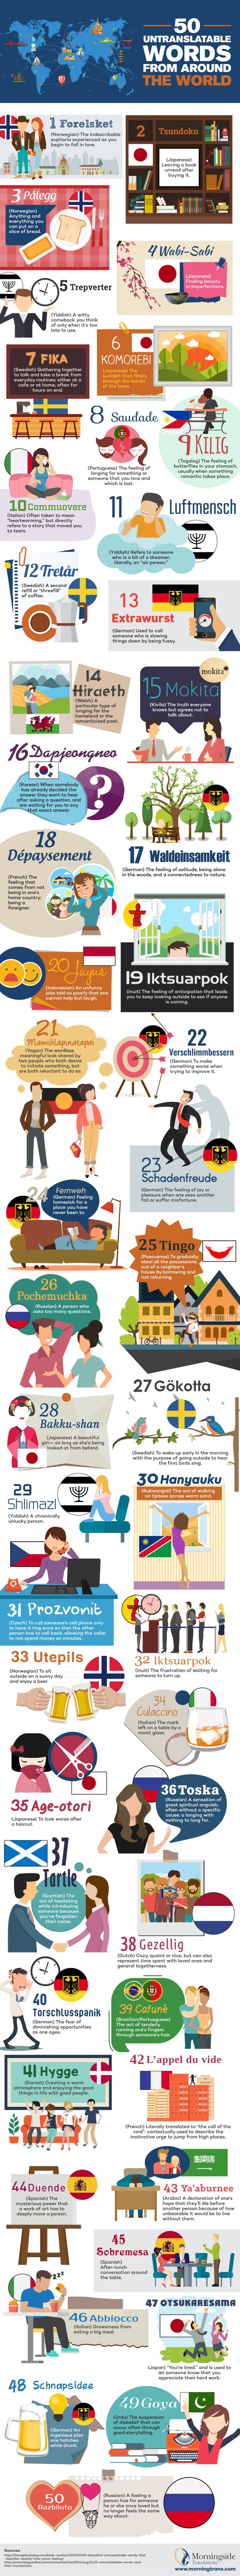 50 Untranslatable Words From Around the World #Infographic